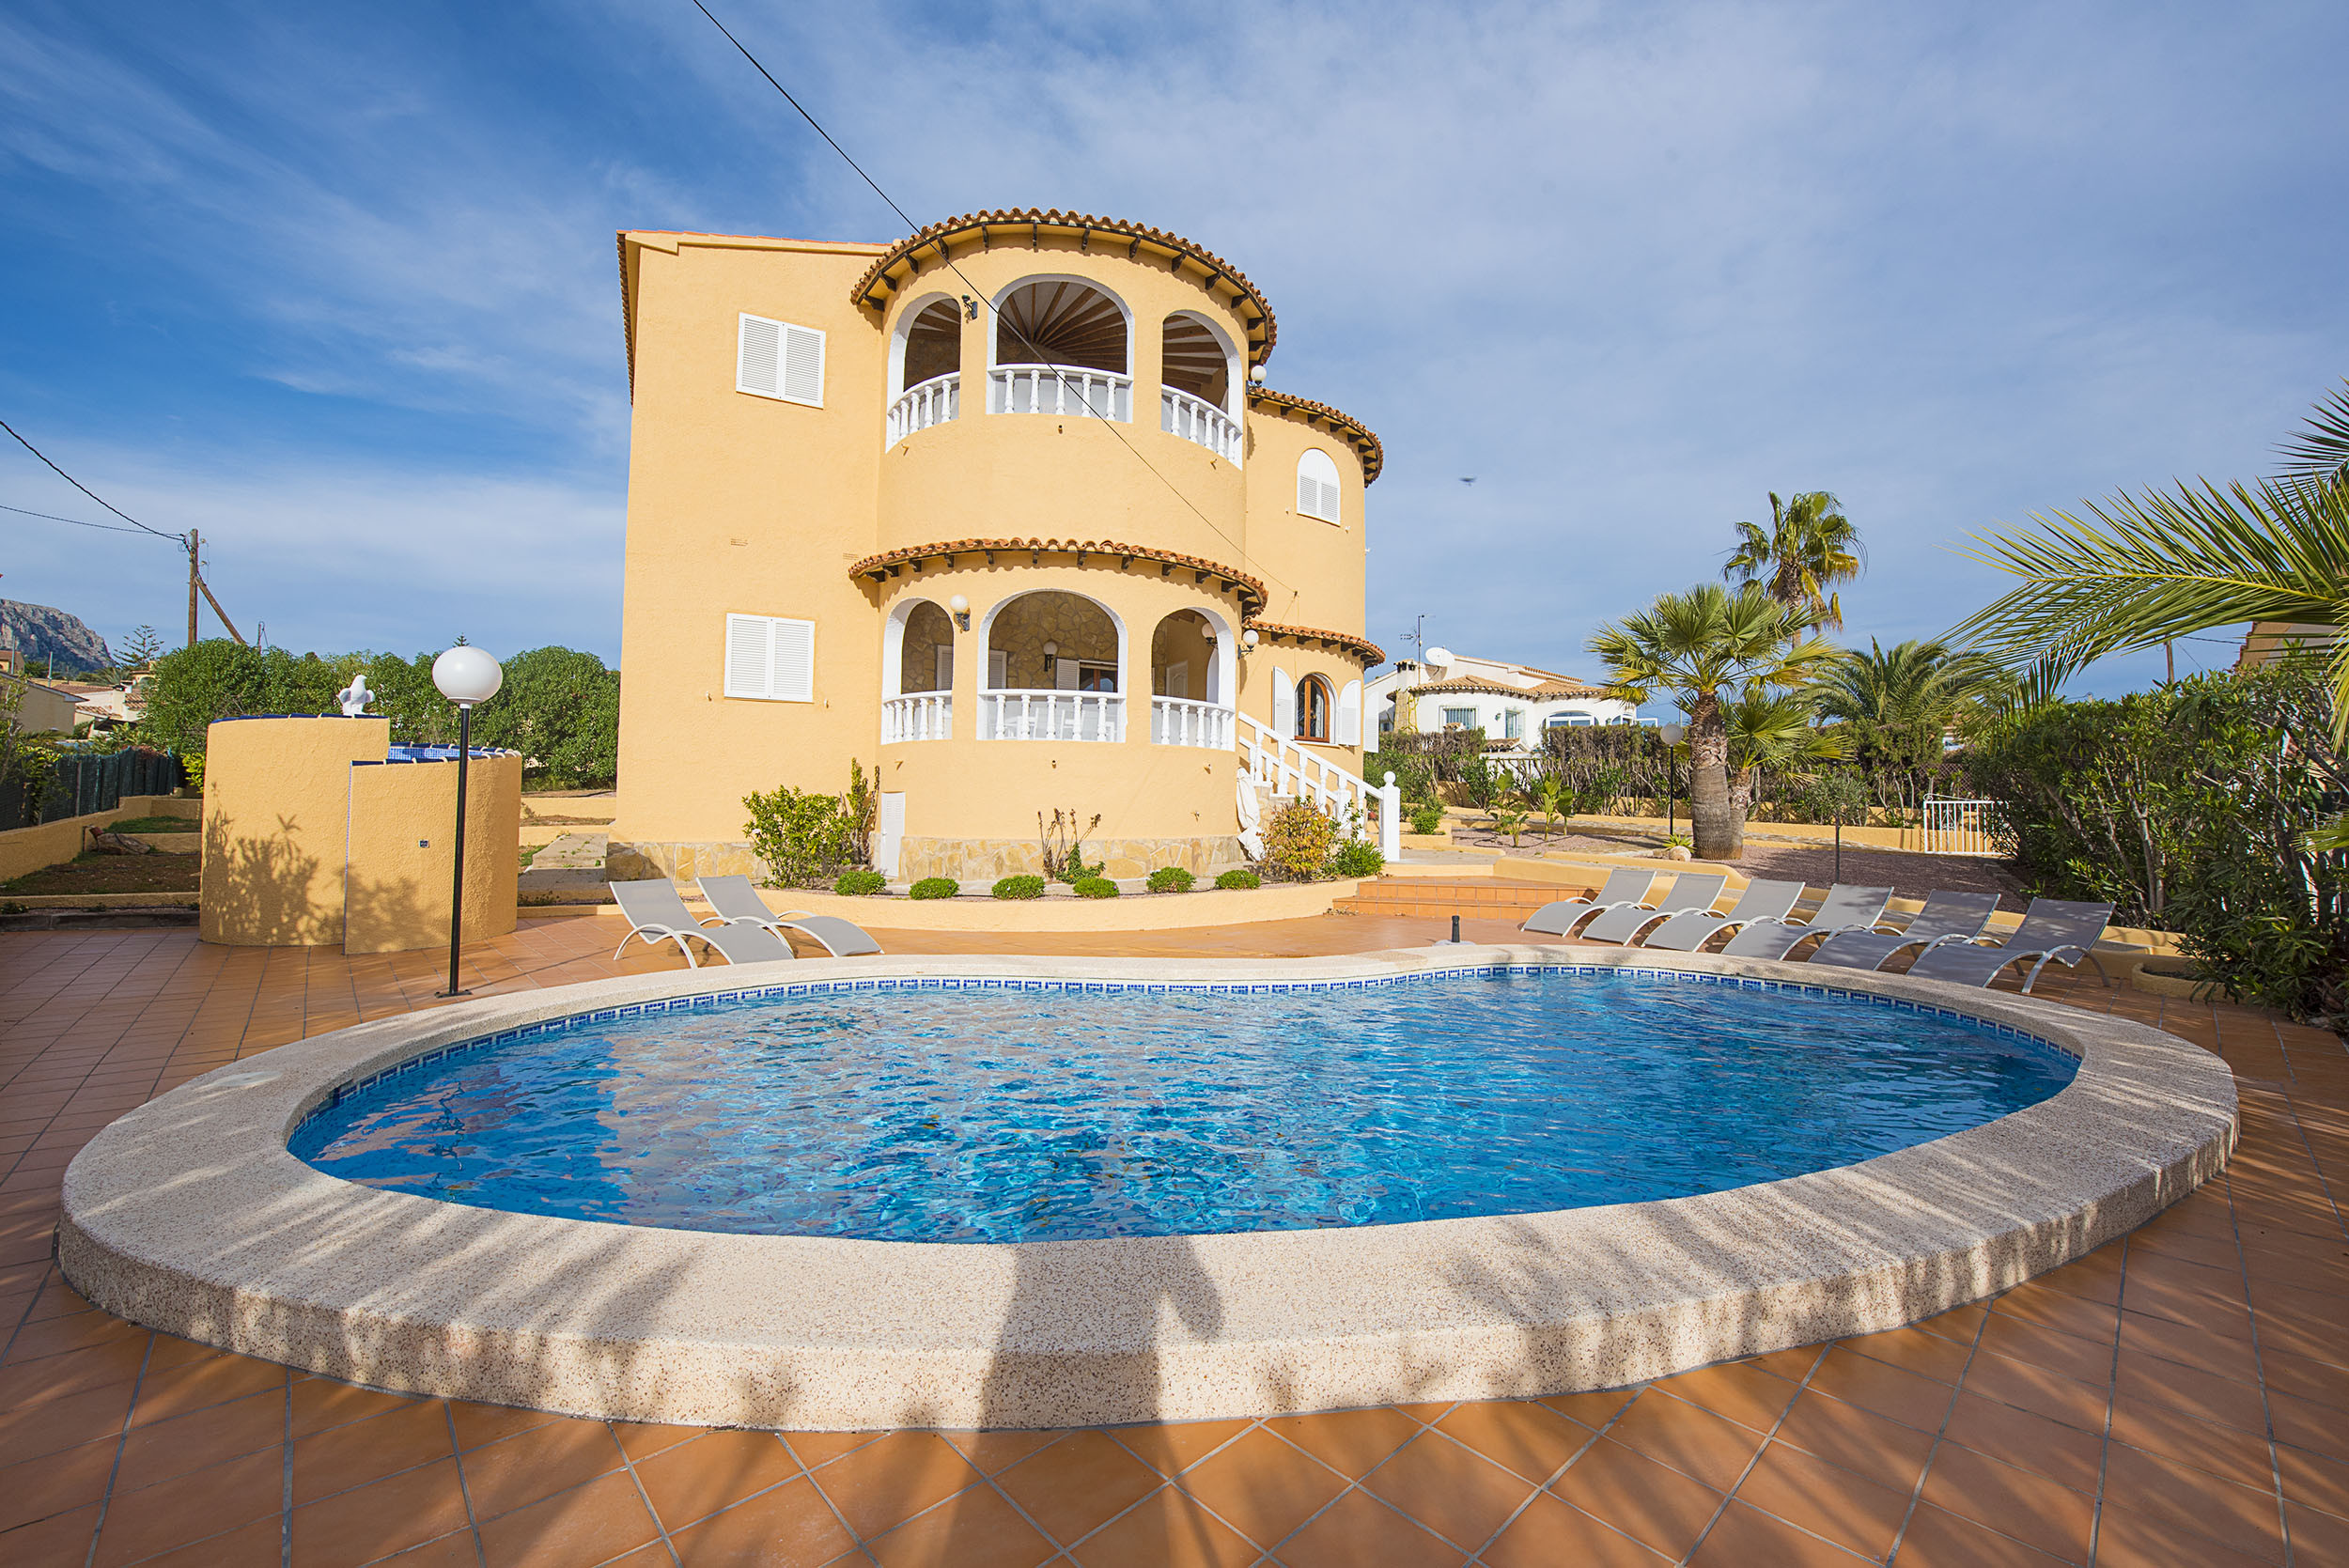 Villa Heather,Calpe,Costa Blanca #1